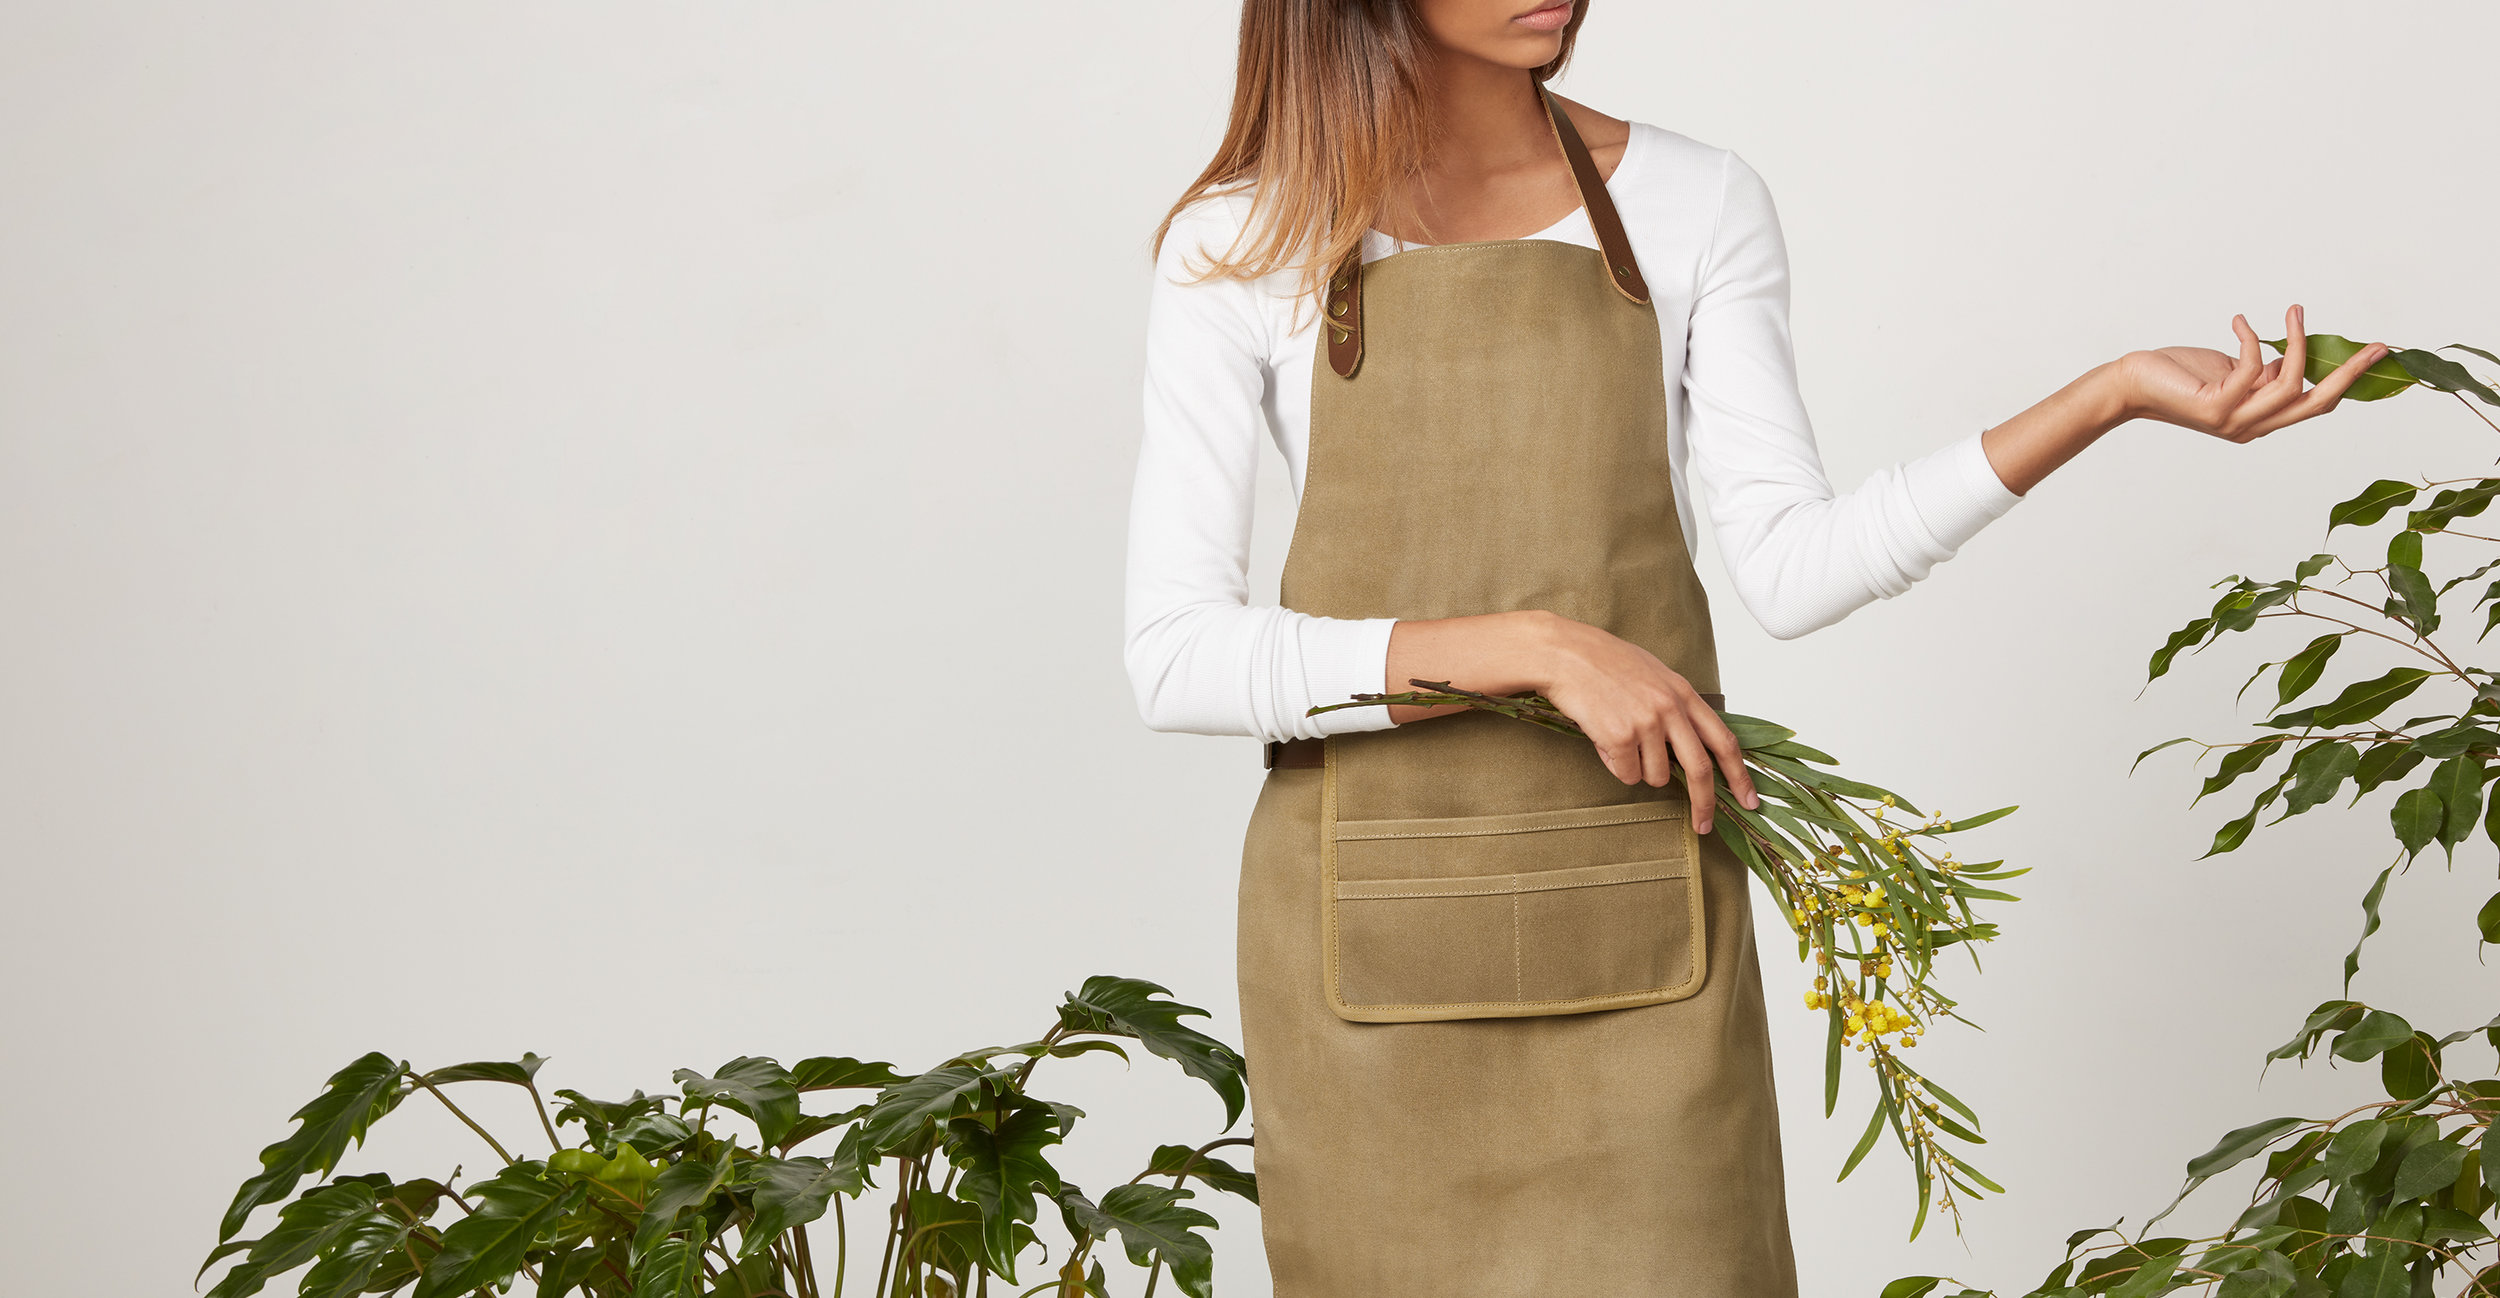 ACCBLY001MUL-UK_Blythe_Garden_Apron_Waxed_Canvas_with_Leather_Straps_LB01.jpg